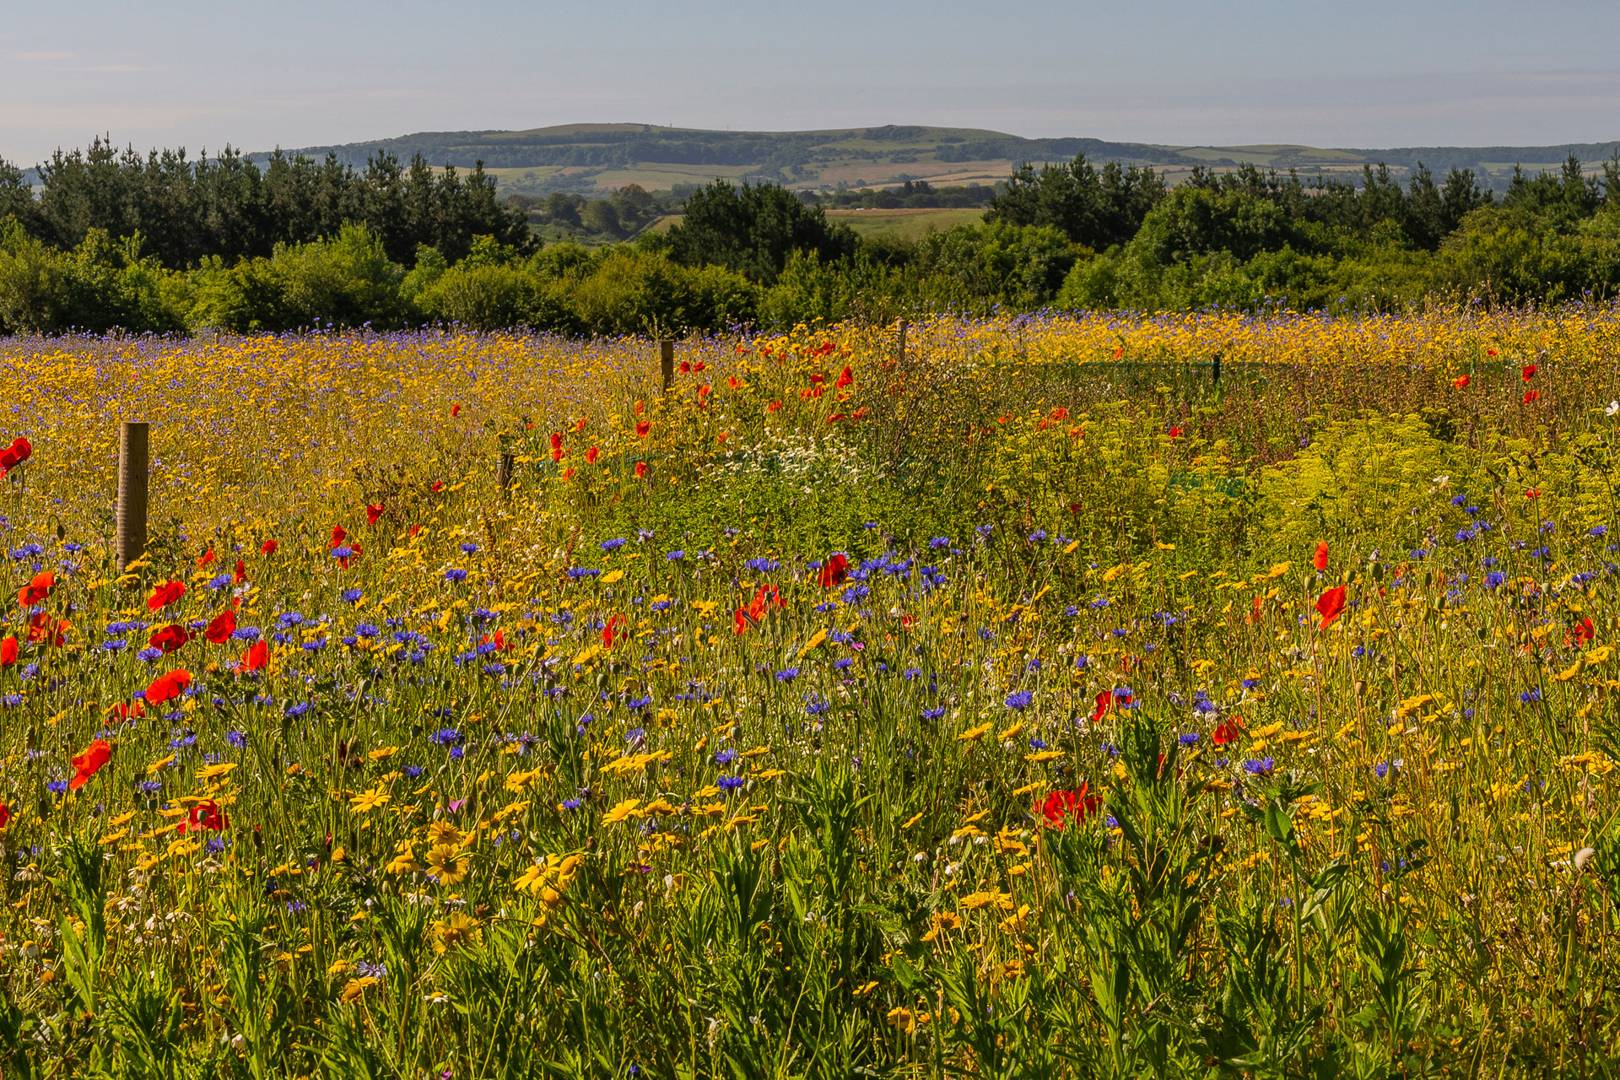 Jo Malone London is helping to save the UK's meadows and wildflowers